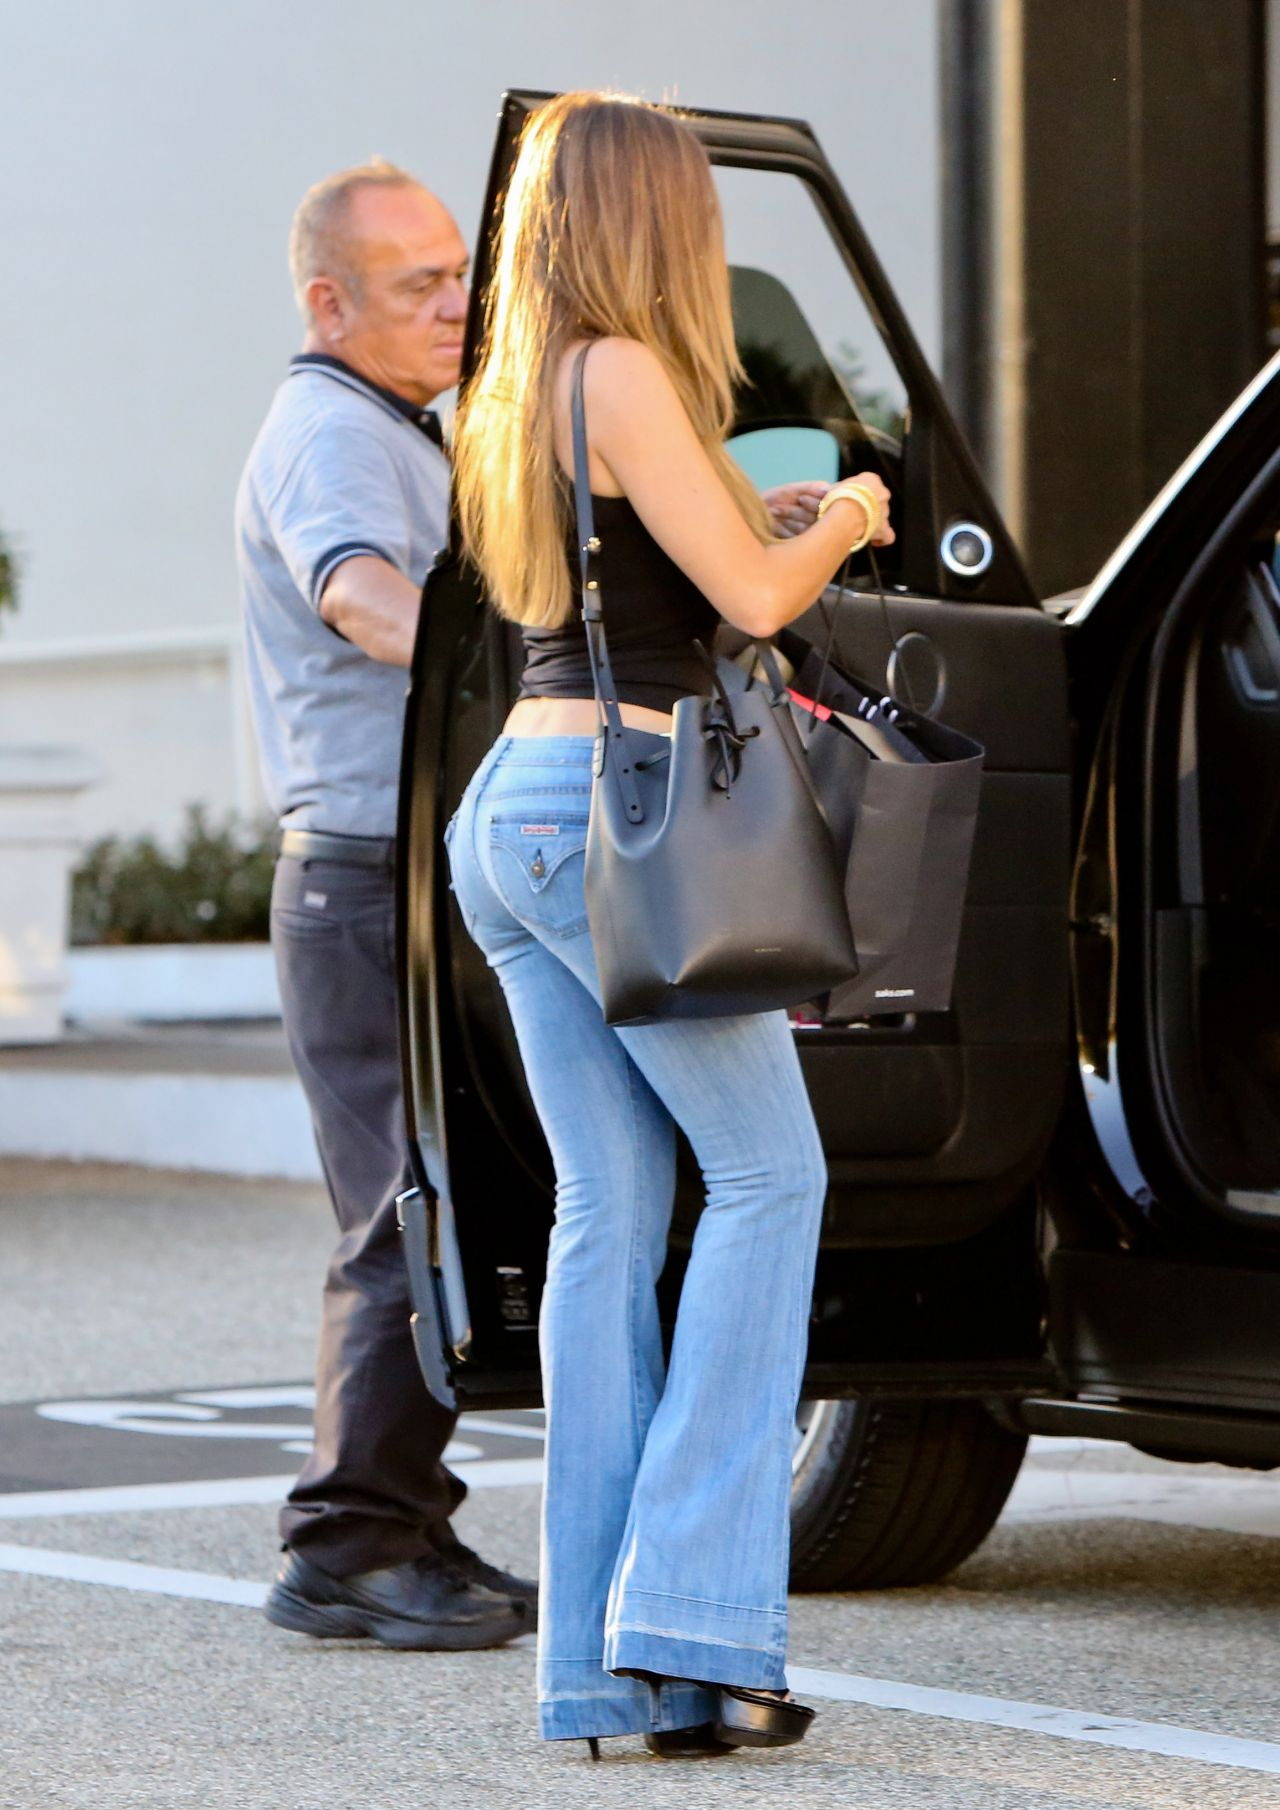 Sofia Vergara Booty In Jeans Shopping At Saks Fifth